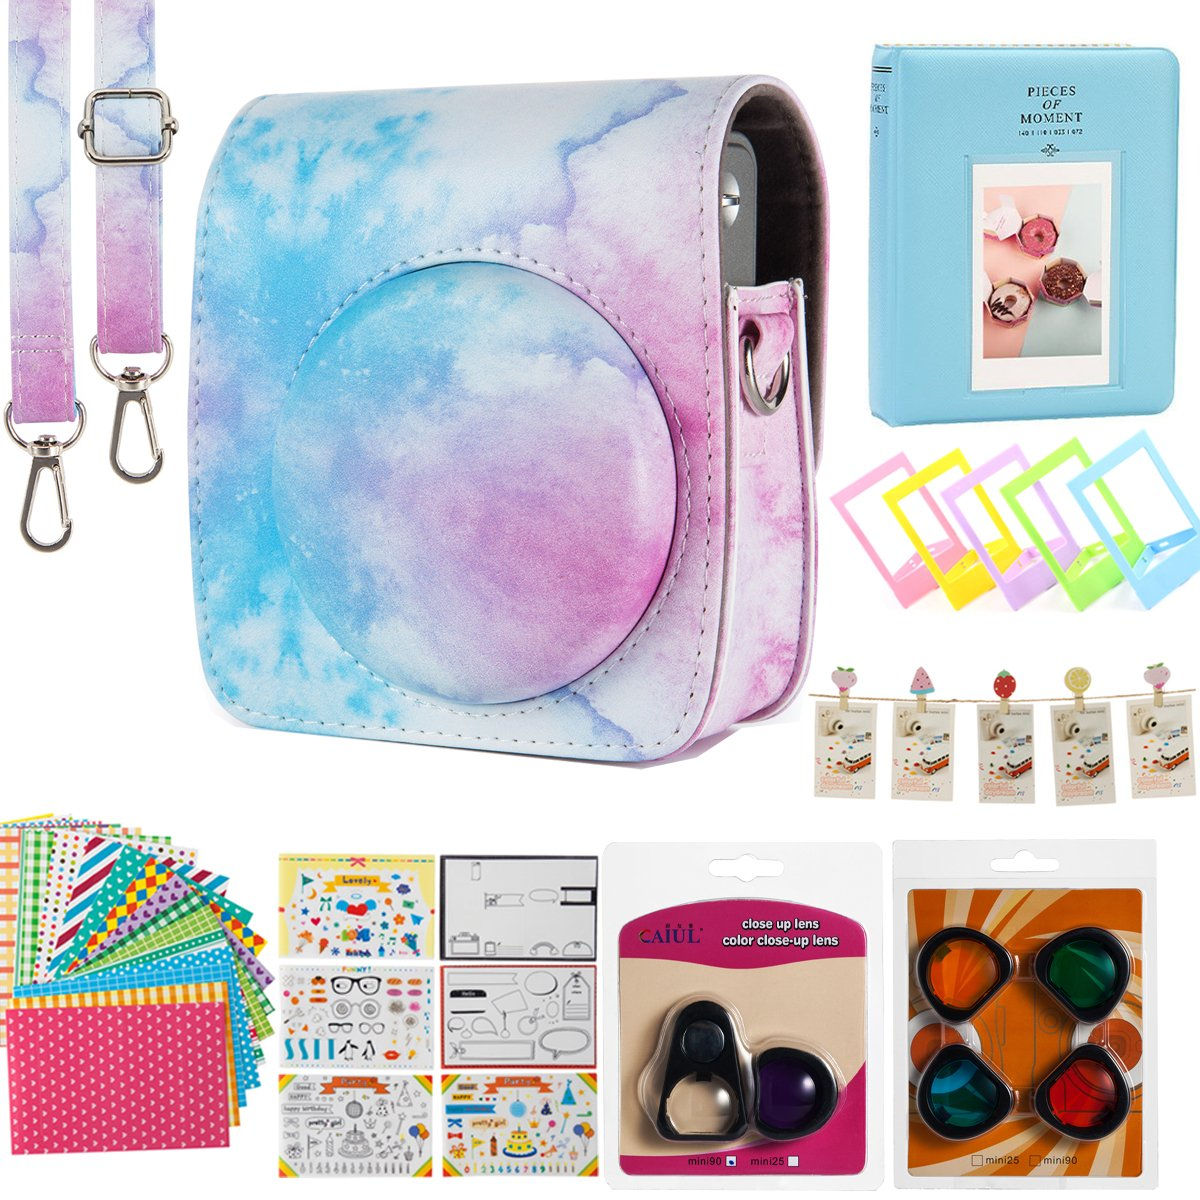 Flylther Mini 90 Instant Flim Camera Accessories 8 in 1 Bundles Set for Fujifilm Instax Mini 90 Camera (Case/Albums/Frames/Film Stickers/Filters) - Blue Pink Watercolor by Flylther